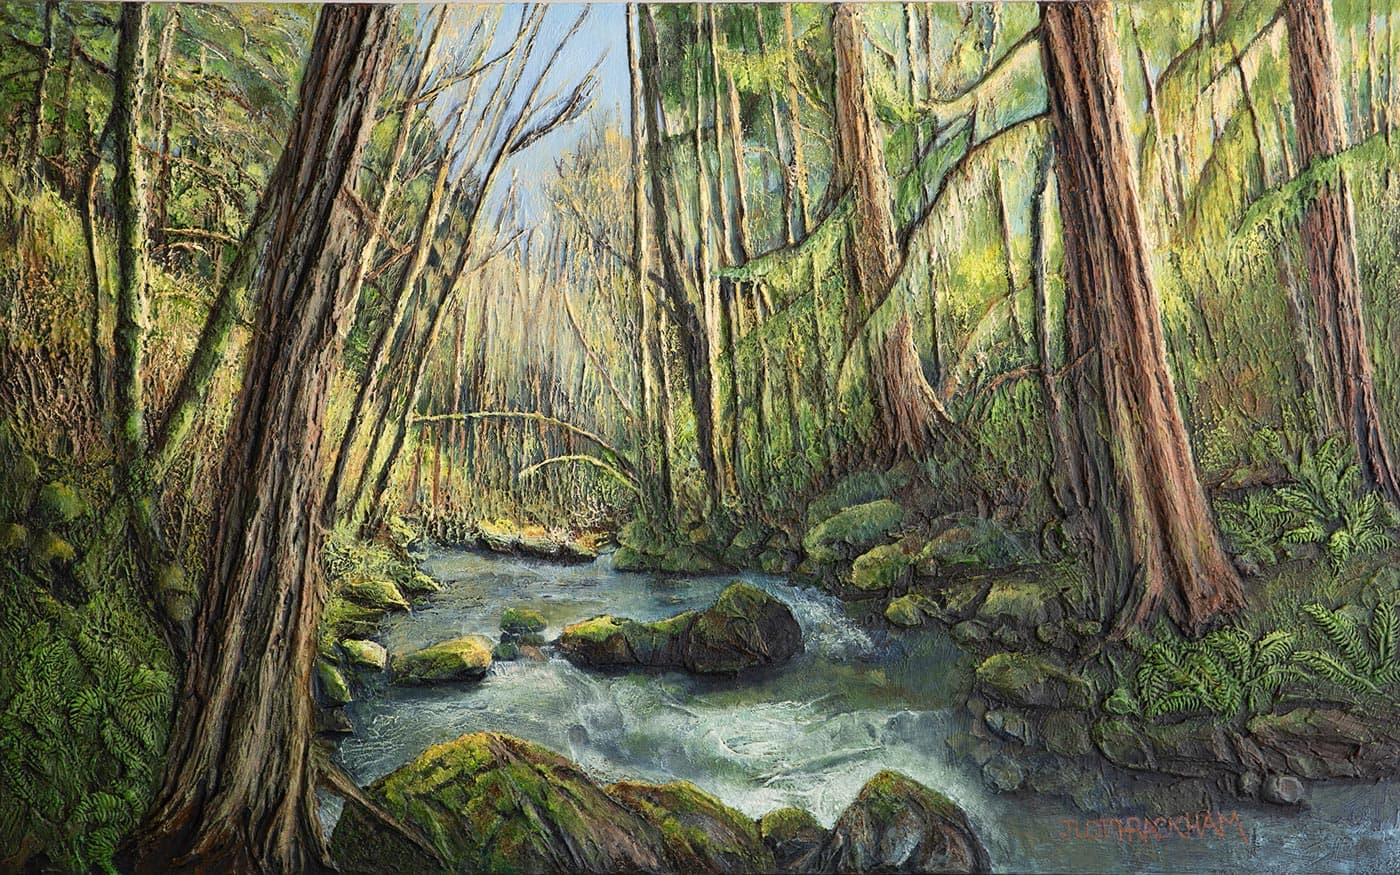 Forest Ferns  (Vancouver Island scene, British Columbia)  30 x 48 inches  Medium - Marble compound buildup on canvas, painted in oils.  Price $2520.00